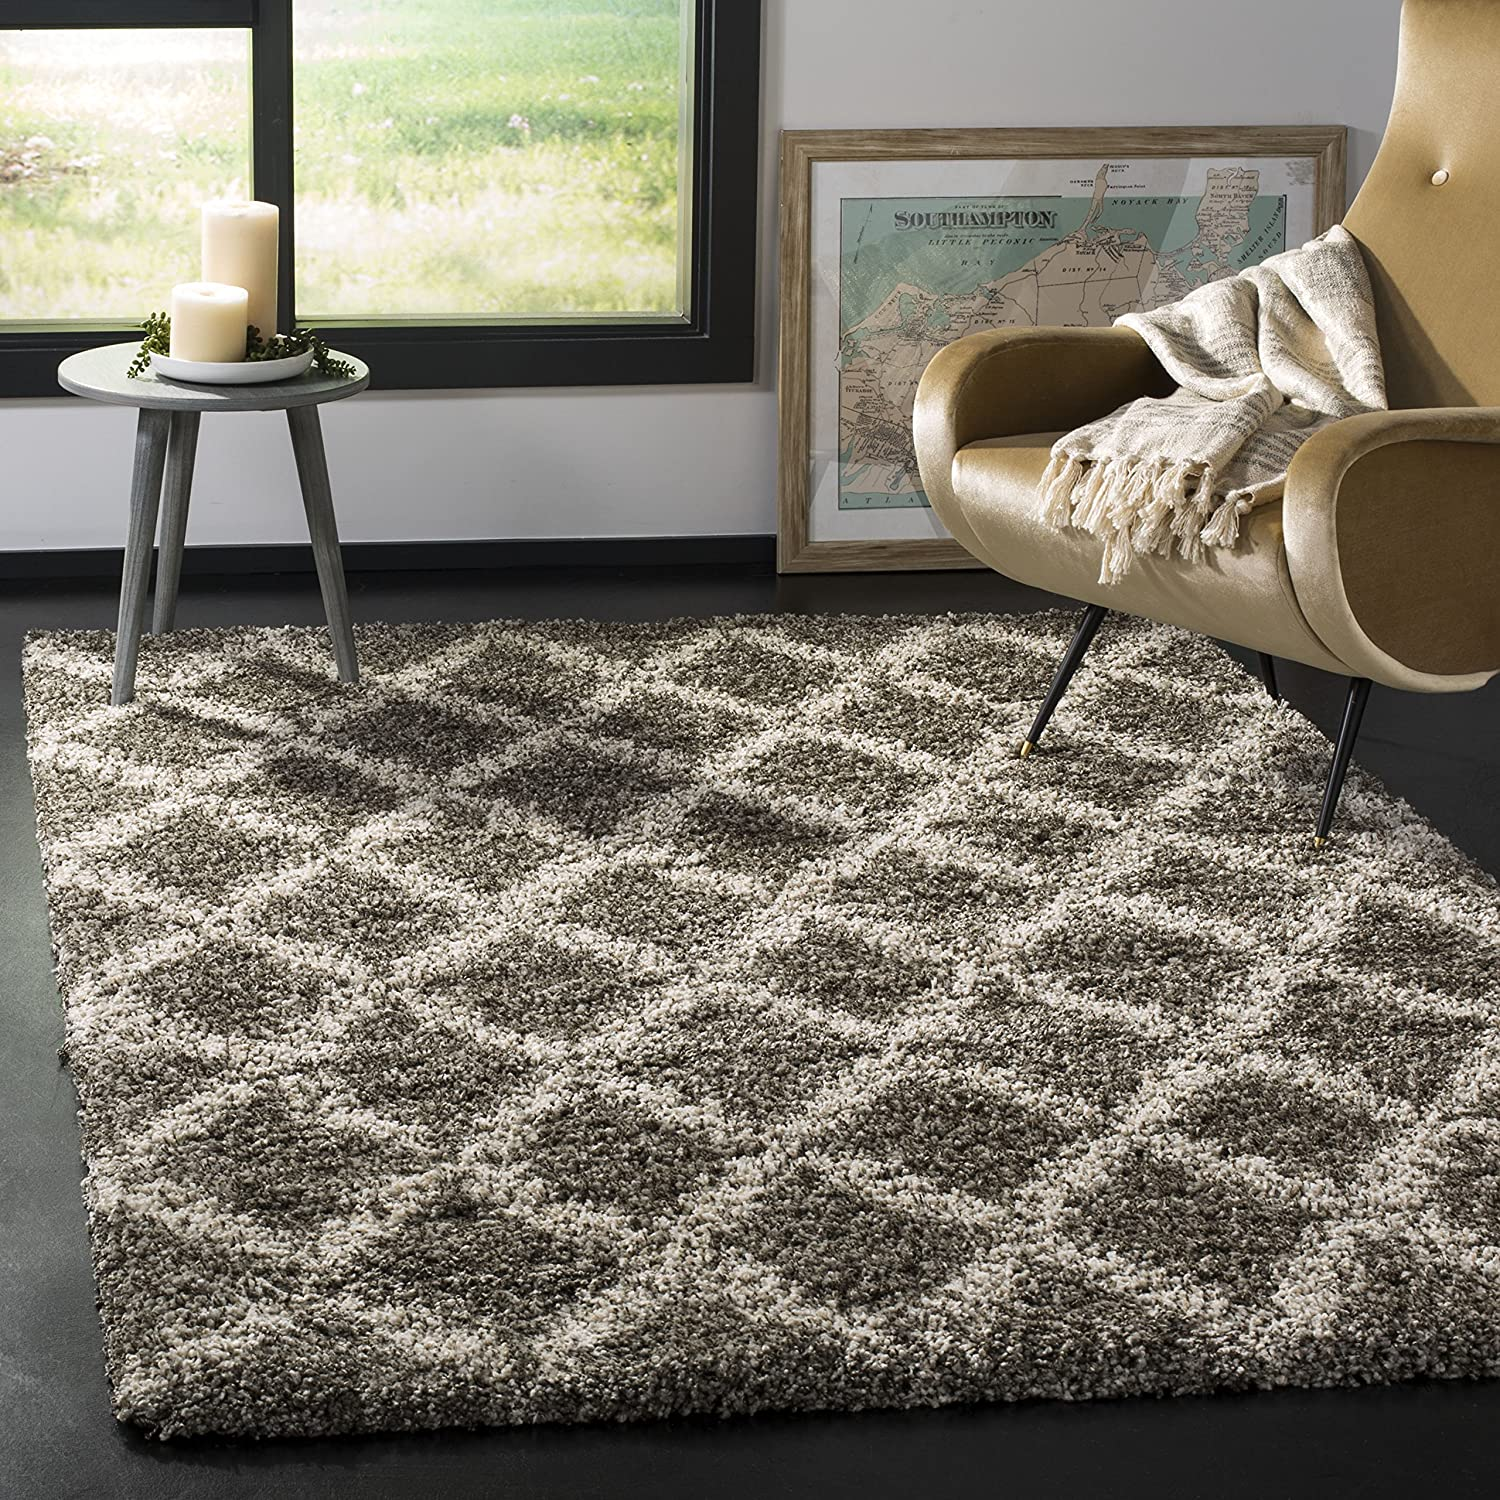 Safavieh Hudson Shag Collection SGH333B Trellis 2-inch Thick Area Rug, 9' x 12', Grey/Ivory